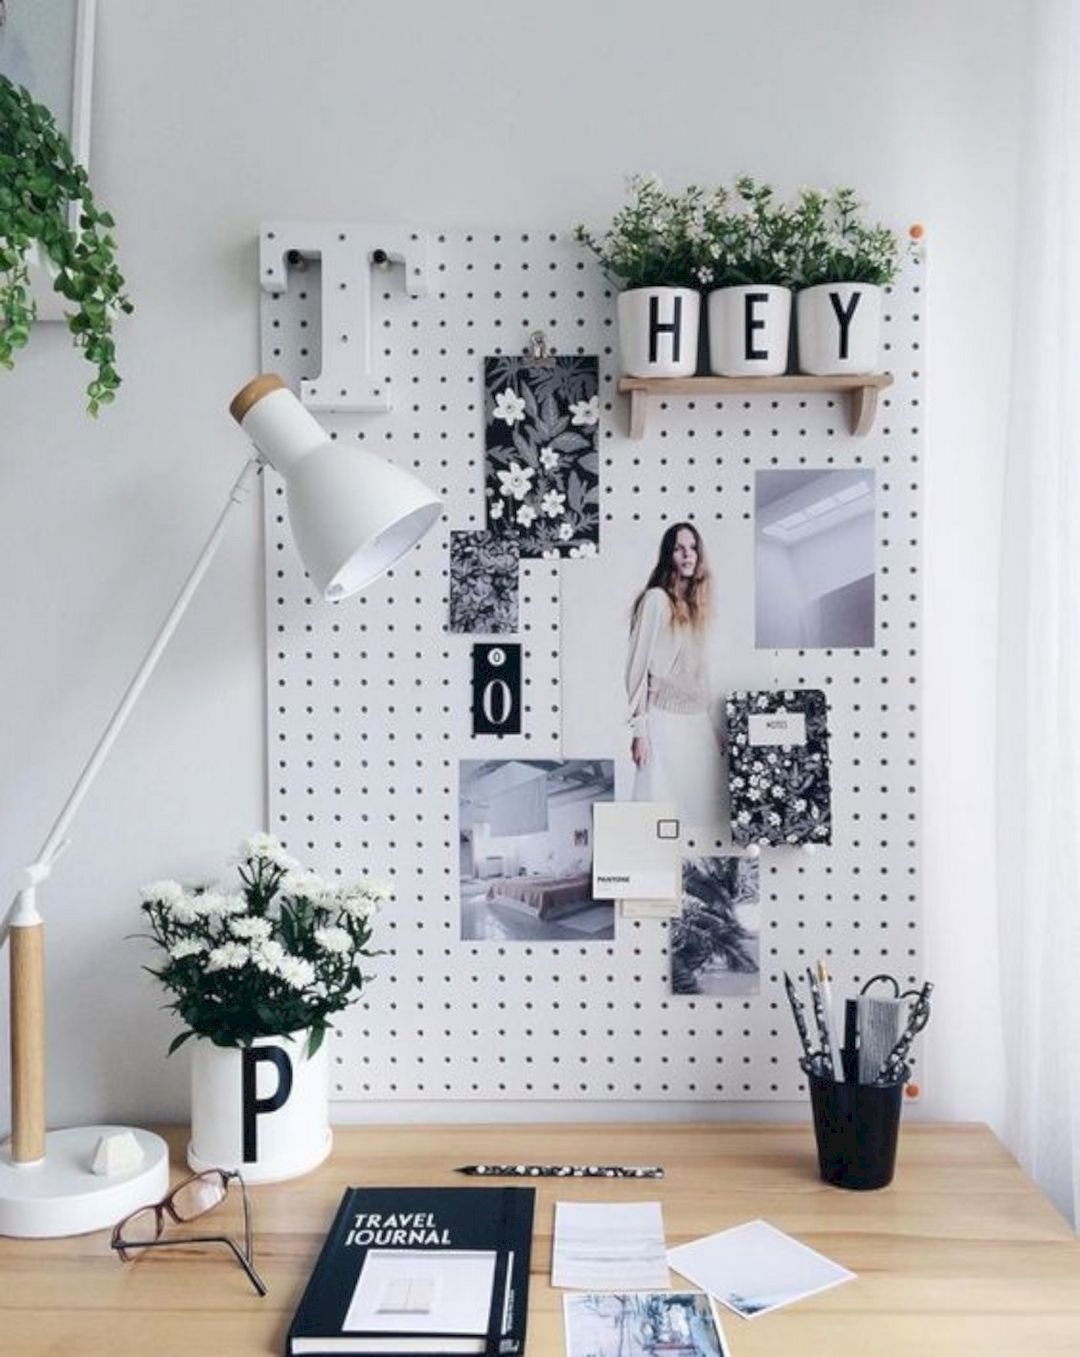 15 Office Decorating Ideas for More Fun Working Days | Office spaces ...